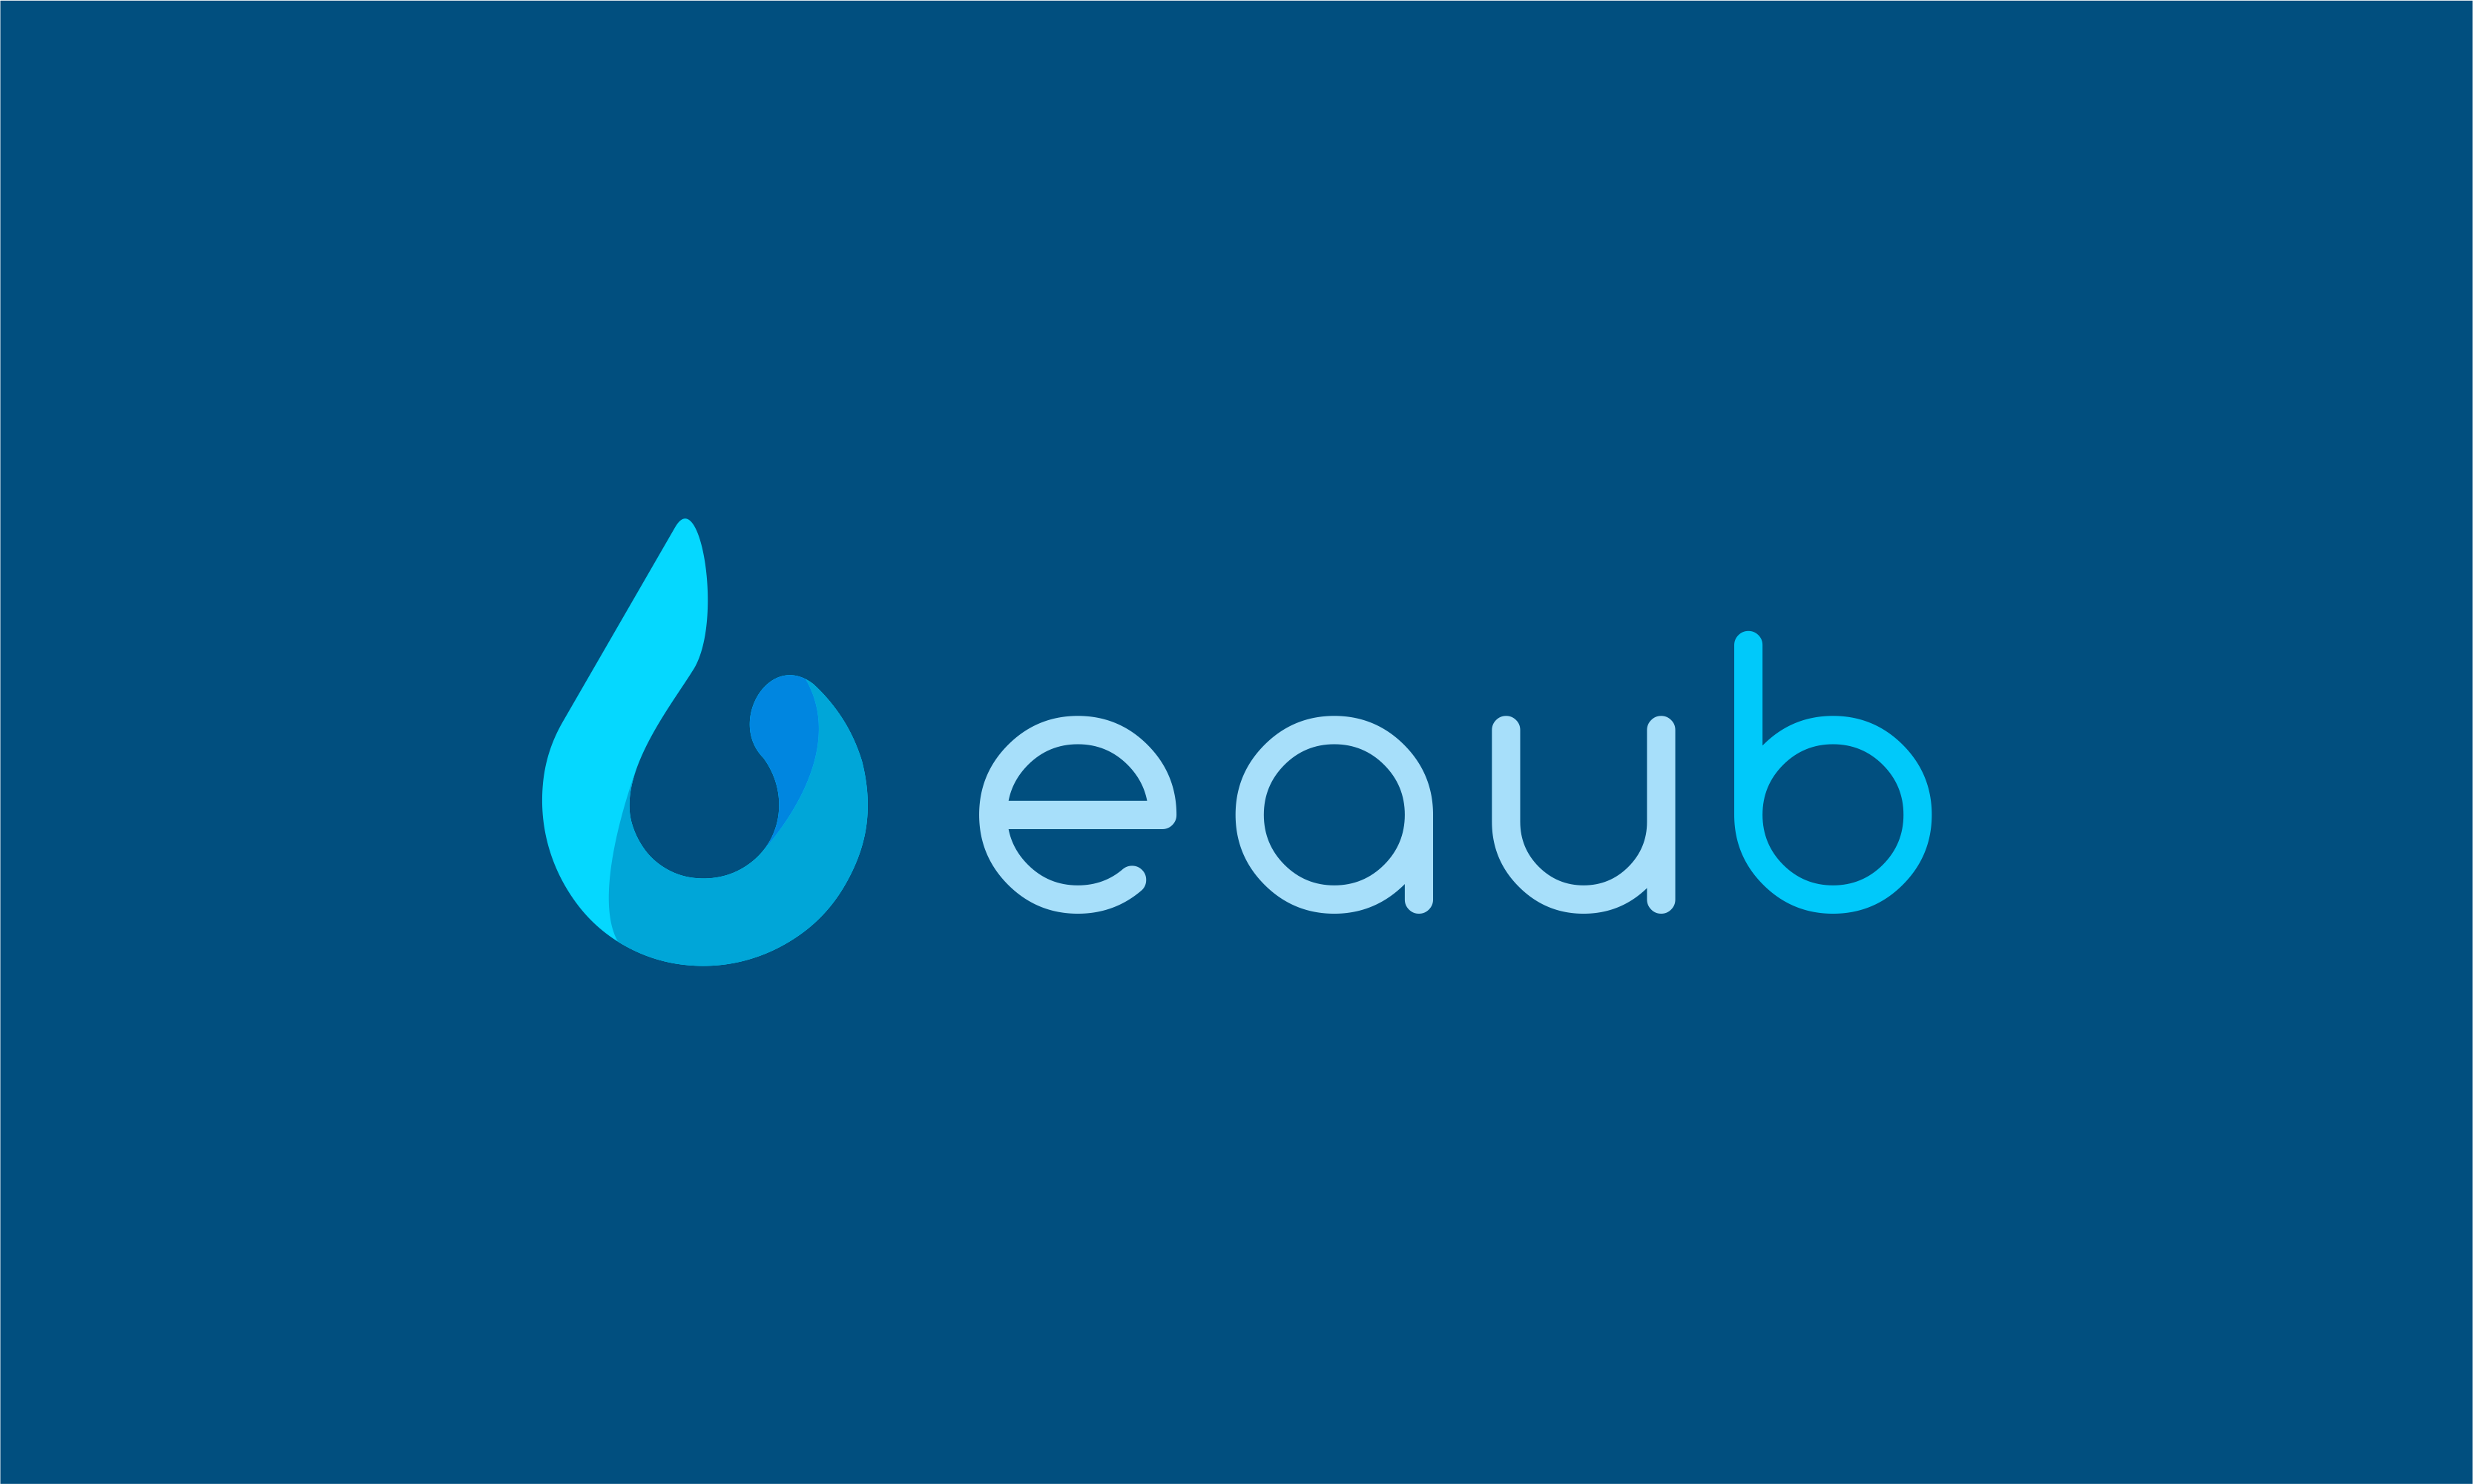 Eaub - E-commerce brand name for sale